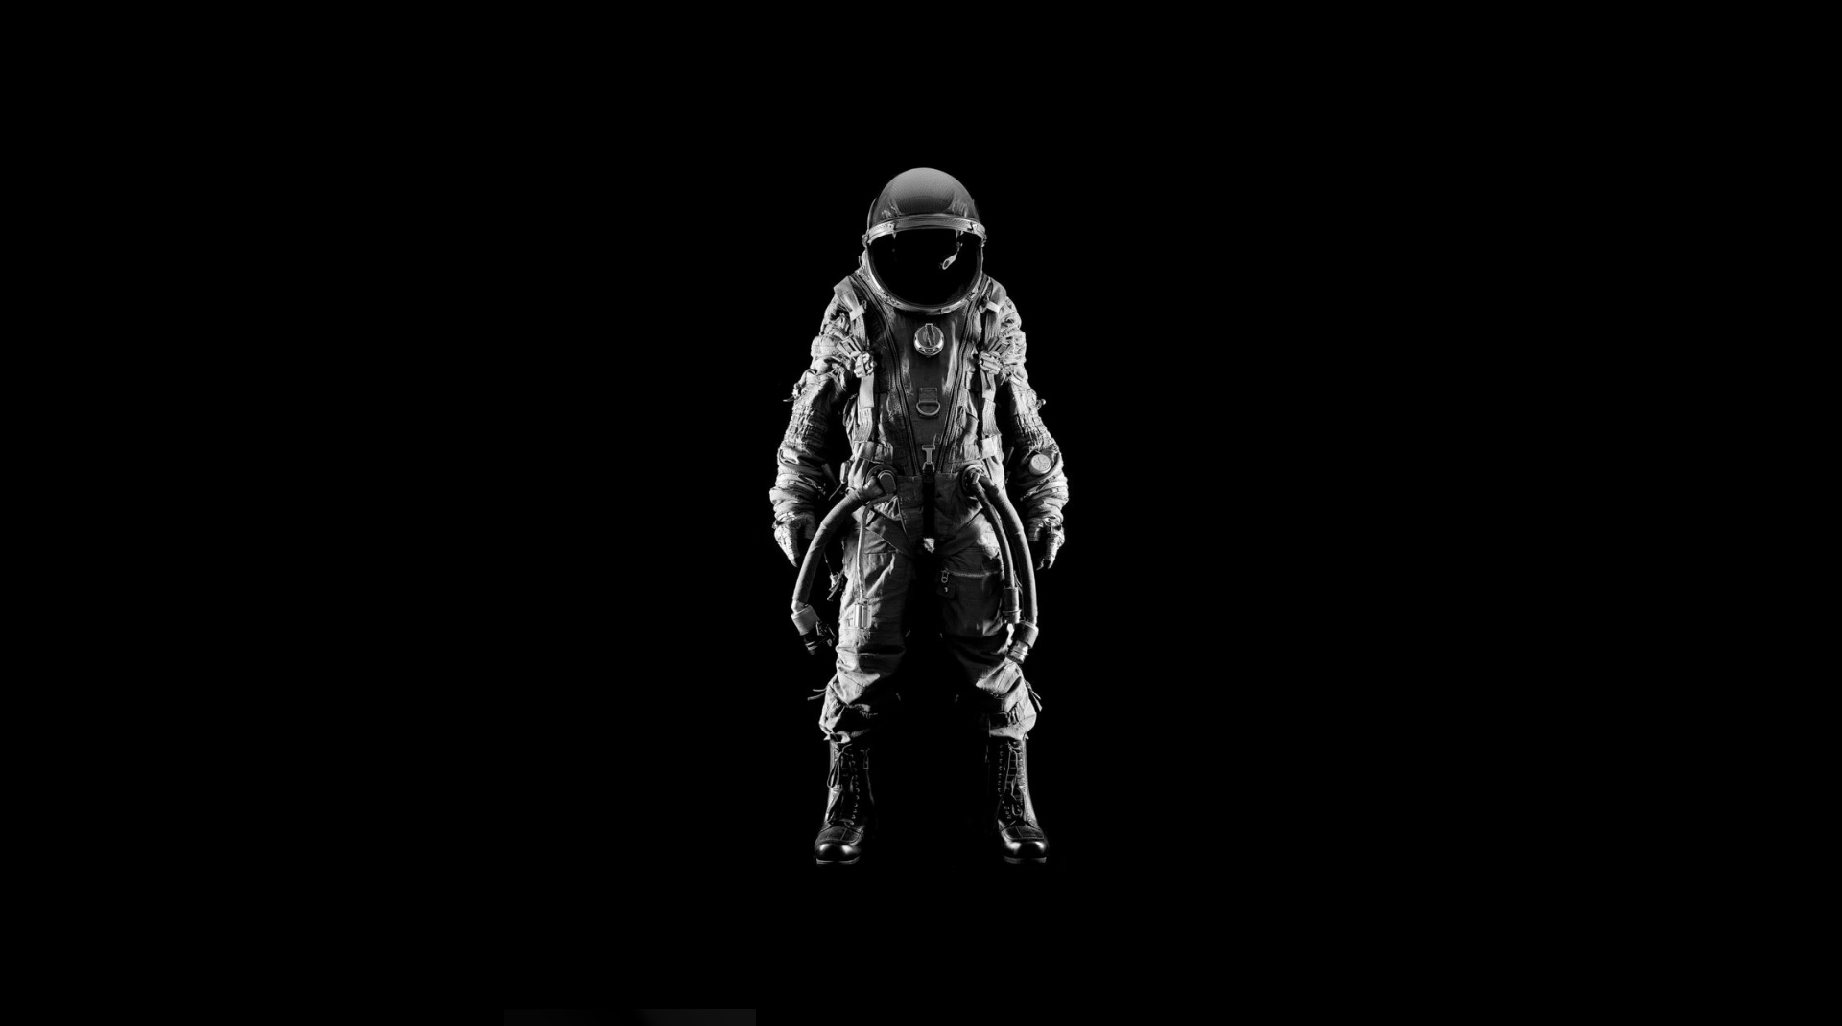 girl in space suit wallpaper - photo #31